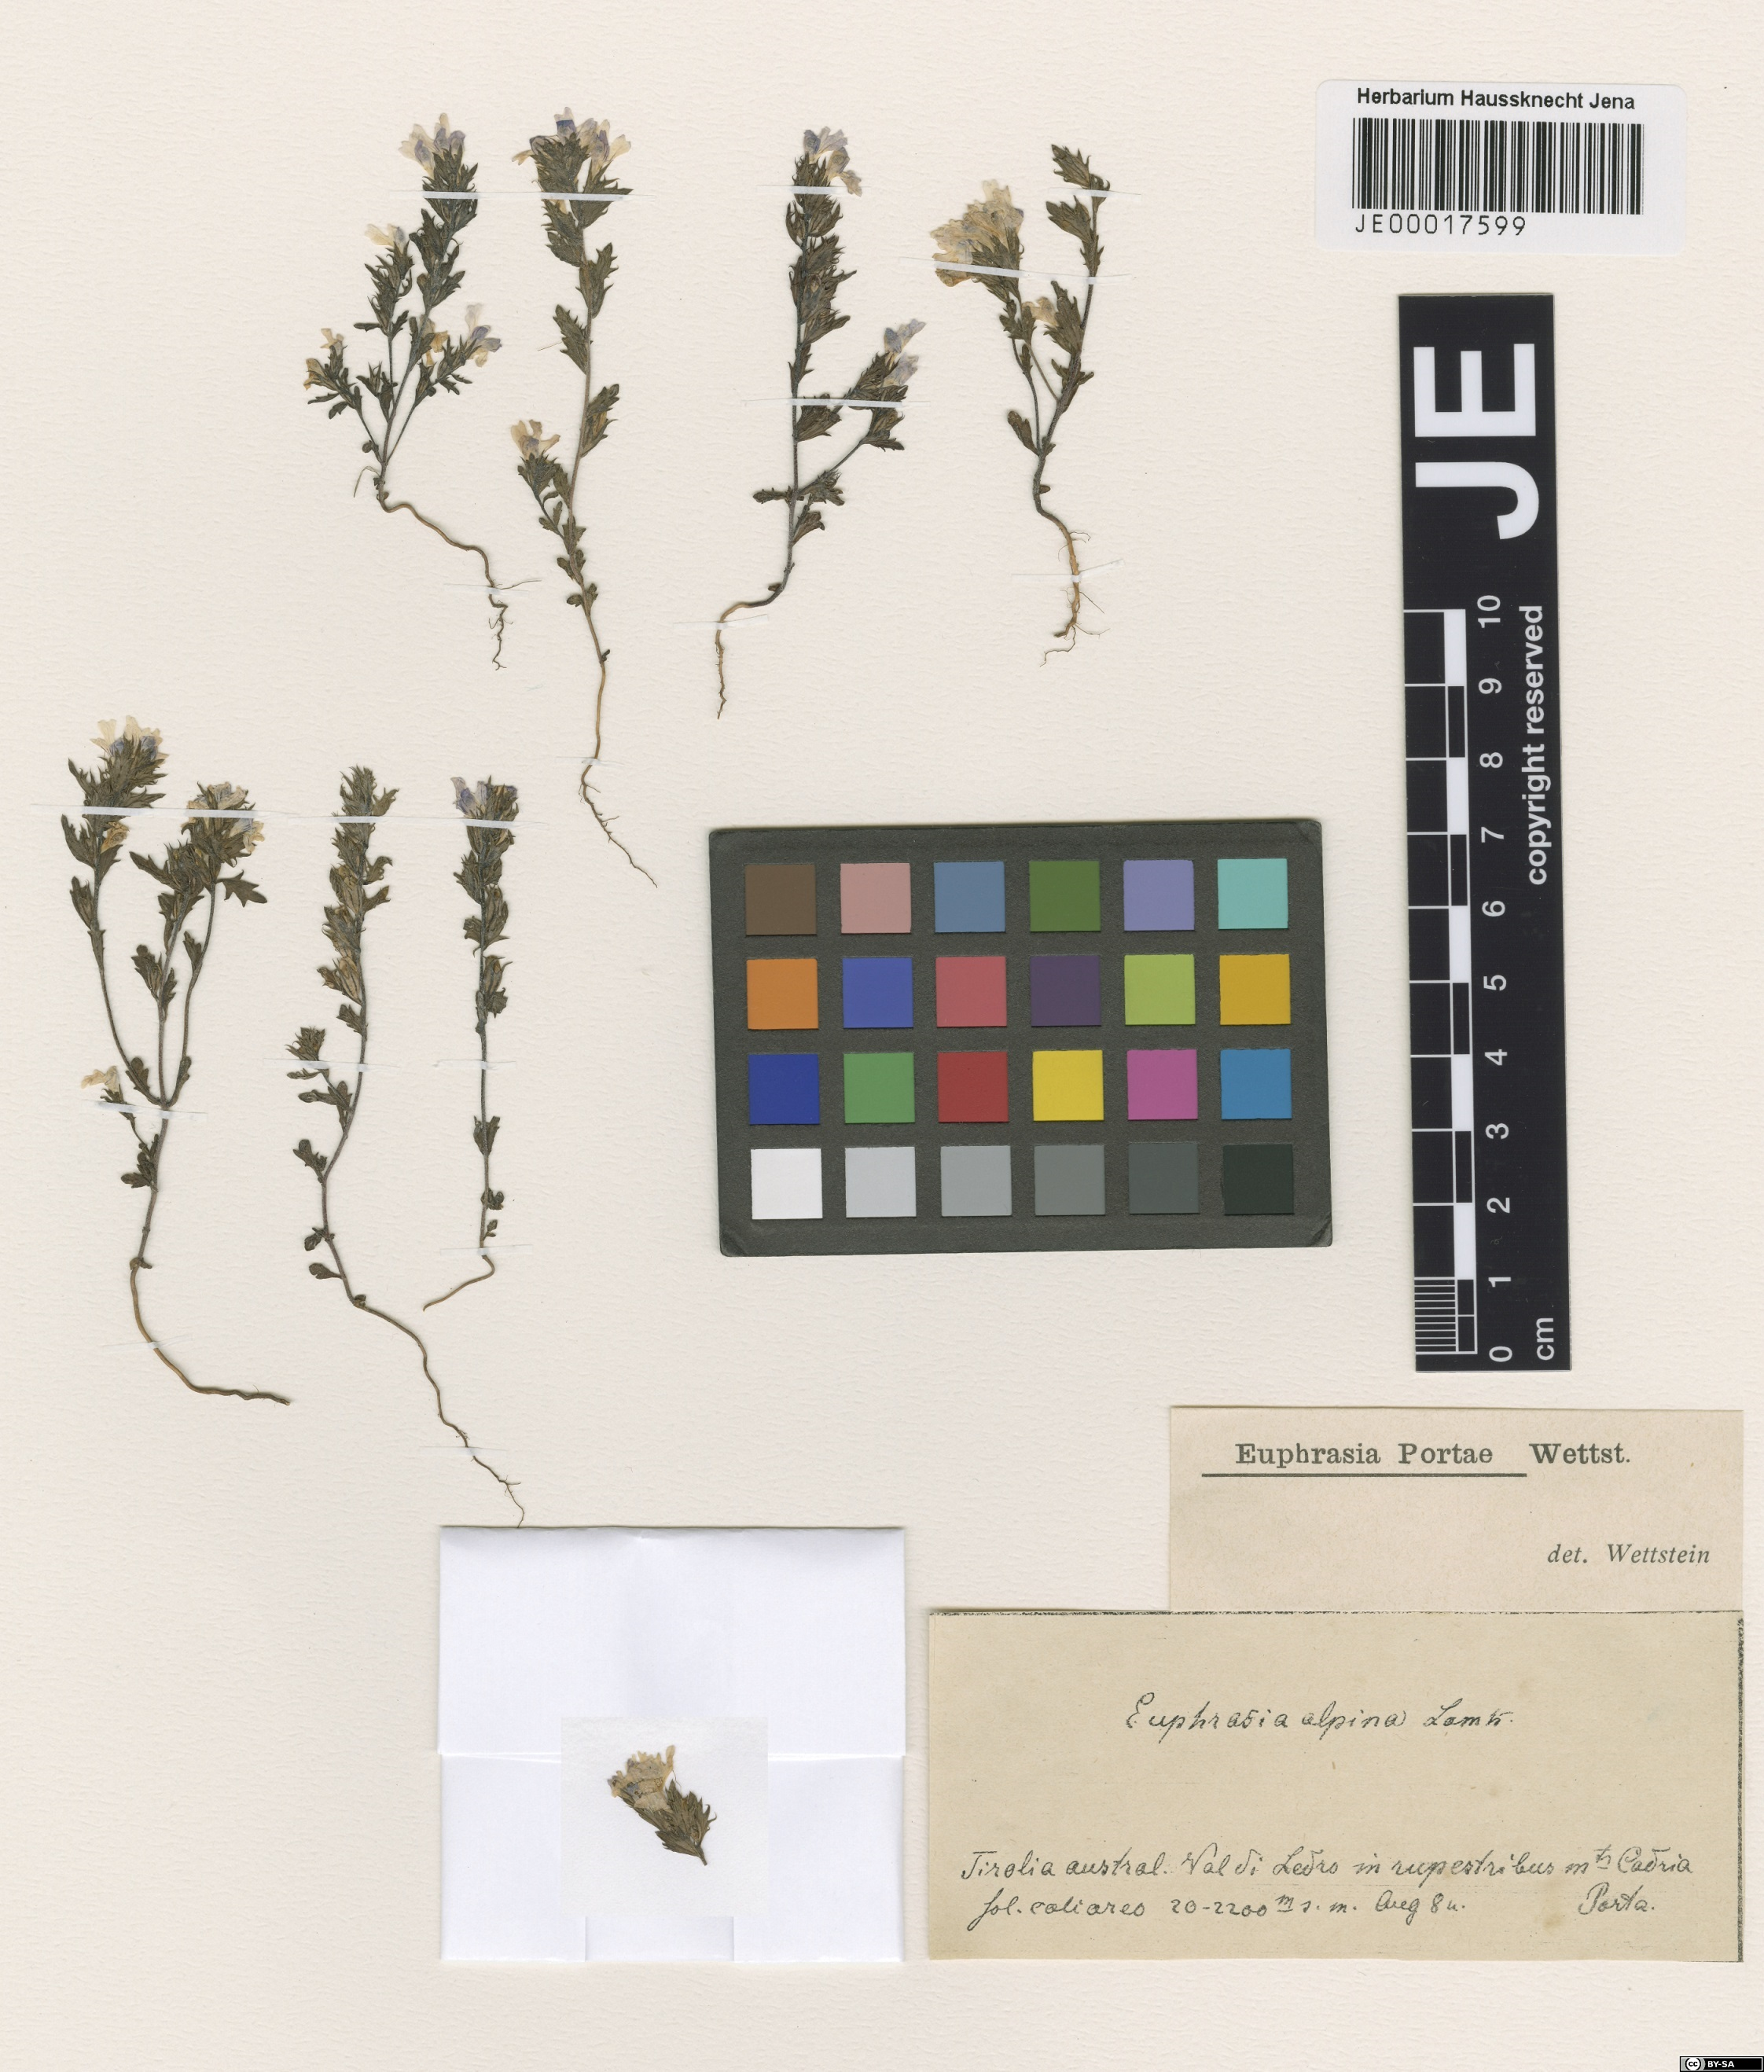 Herbarium JE 00017599 – Source: http://herbarium.univie.ac.at/database/detail.php?ID=310797<br>by